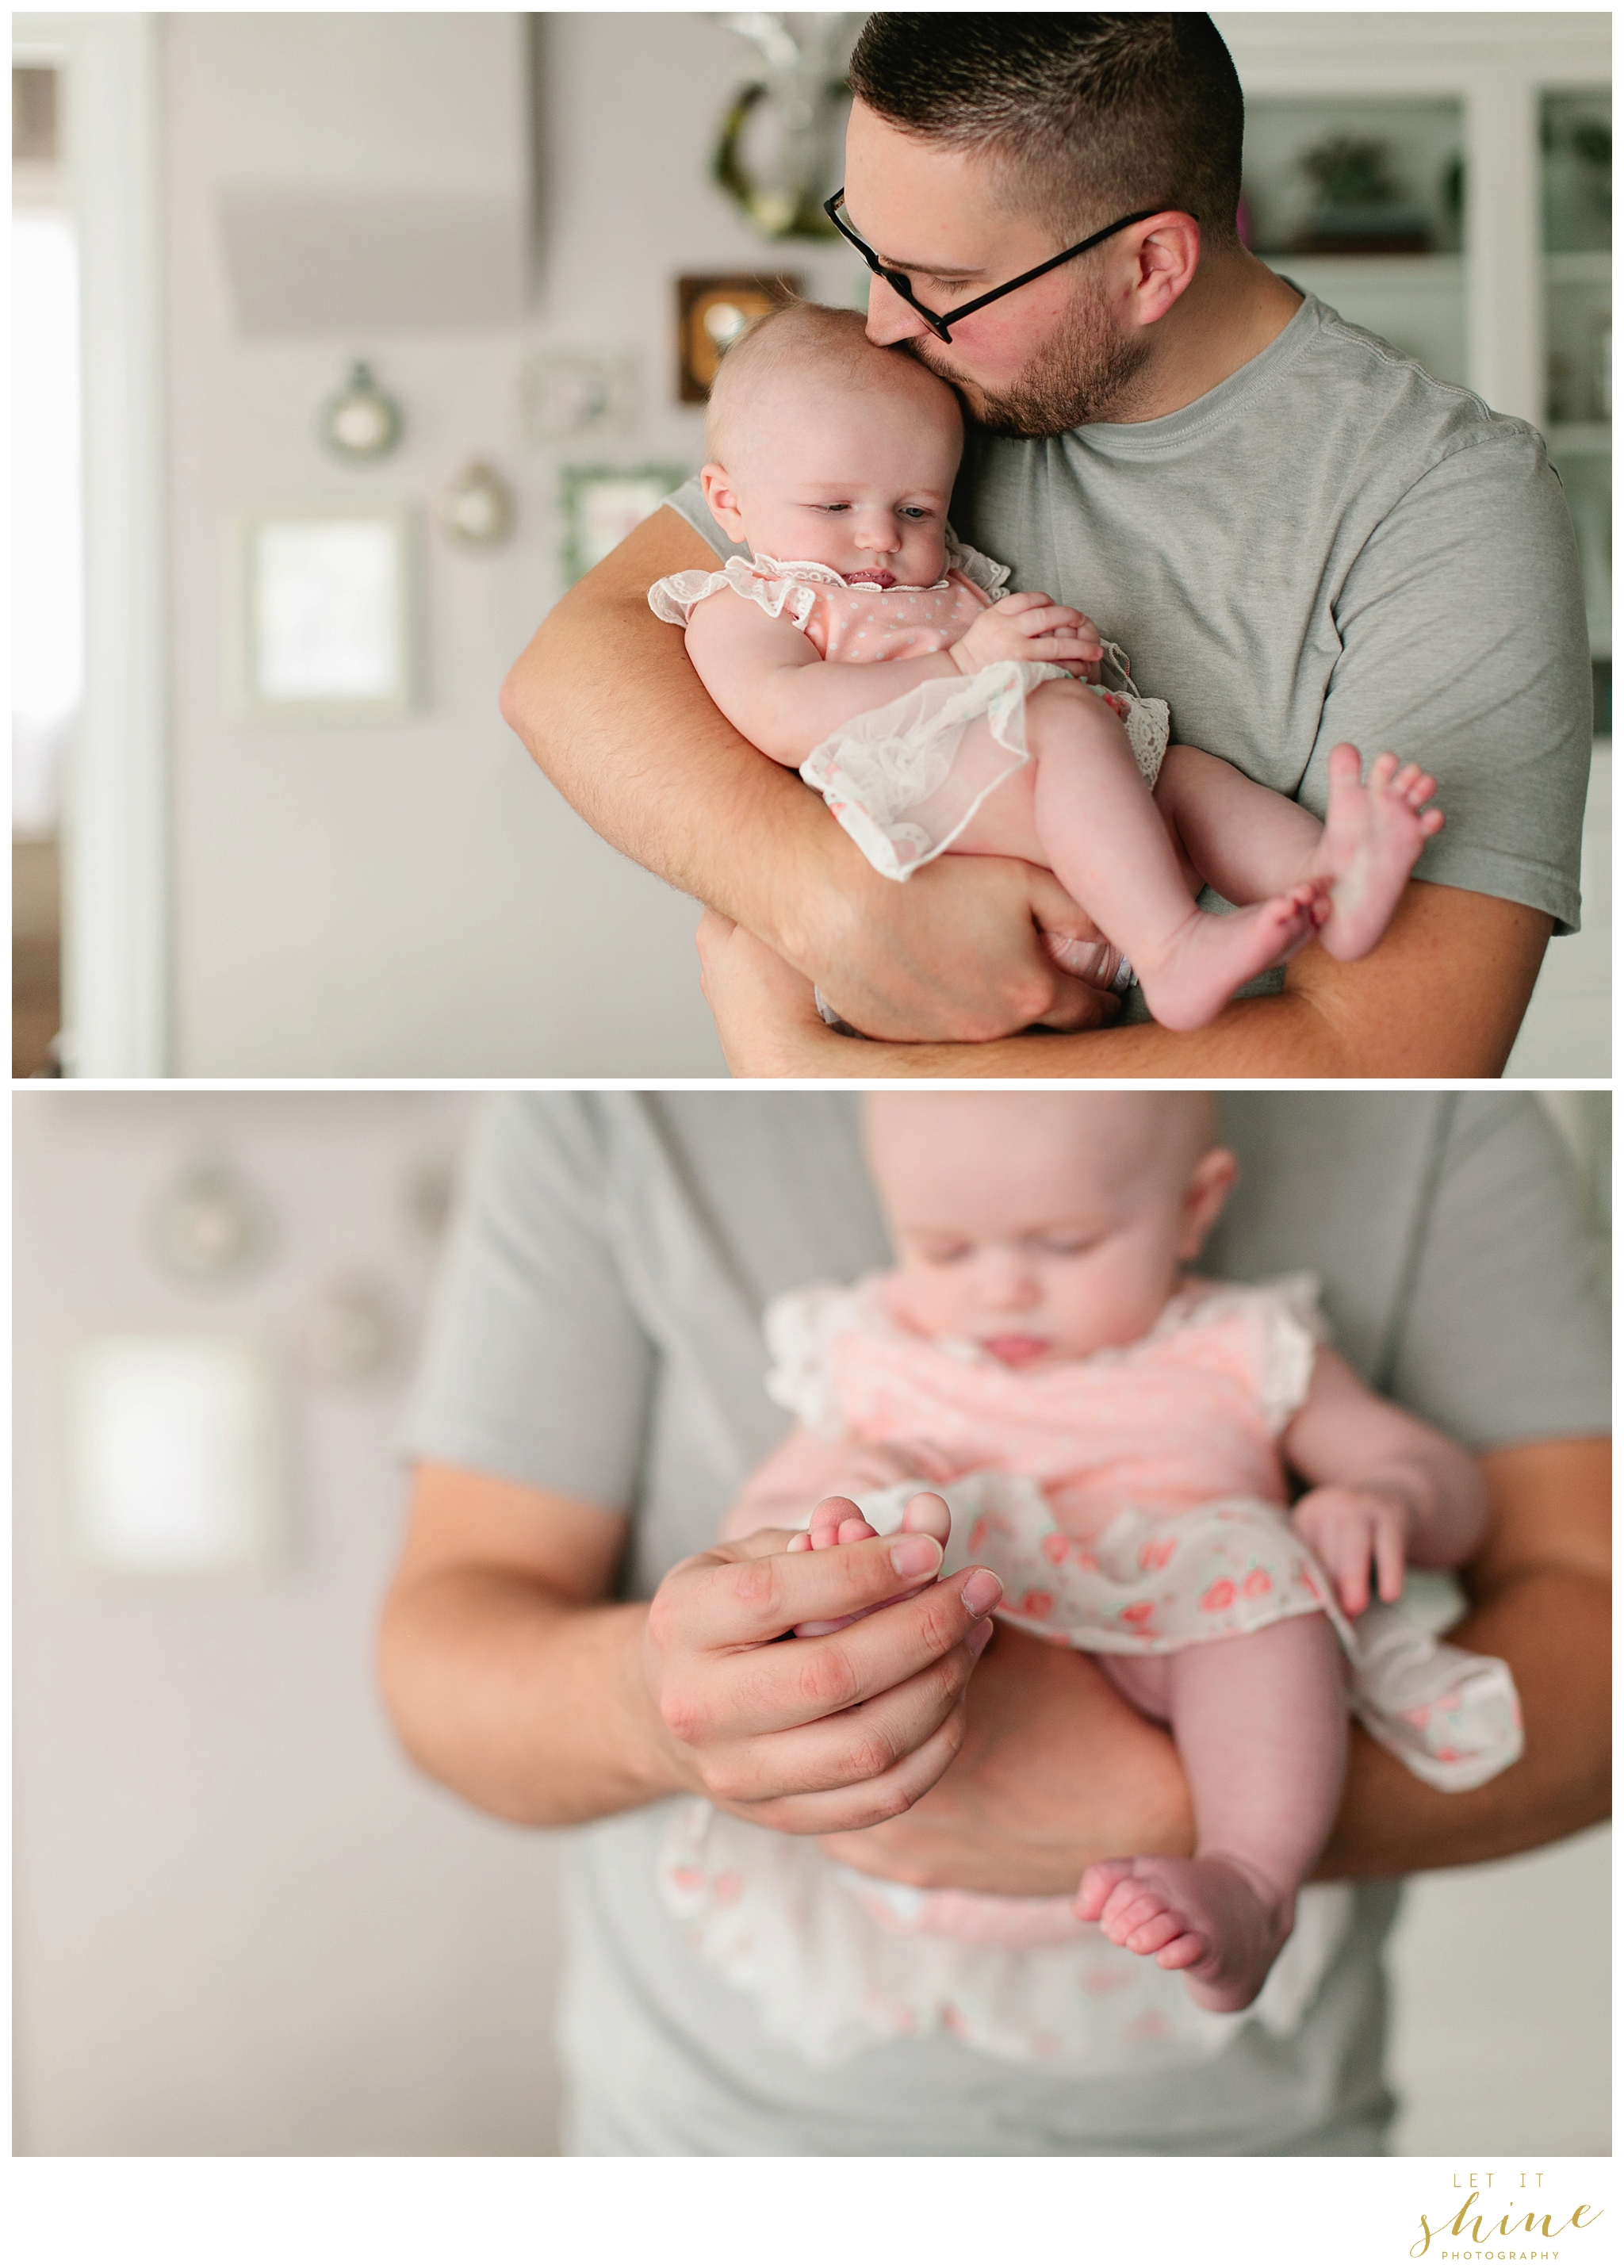 Lifestyle Family In Home Session Photographer Woodford-6714.jpg